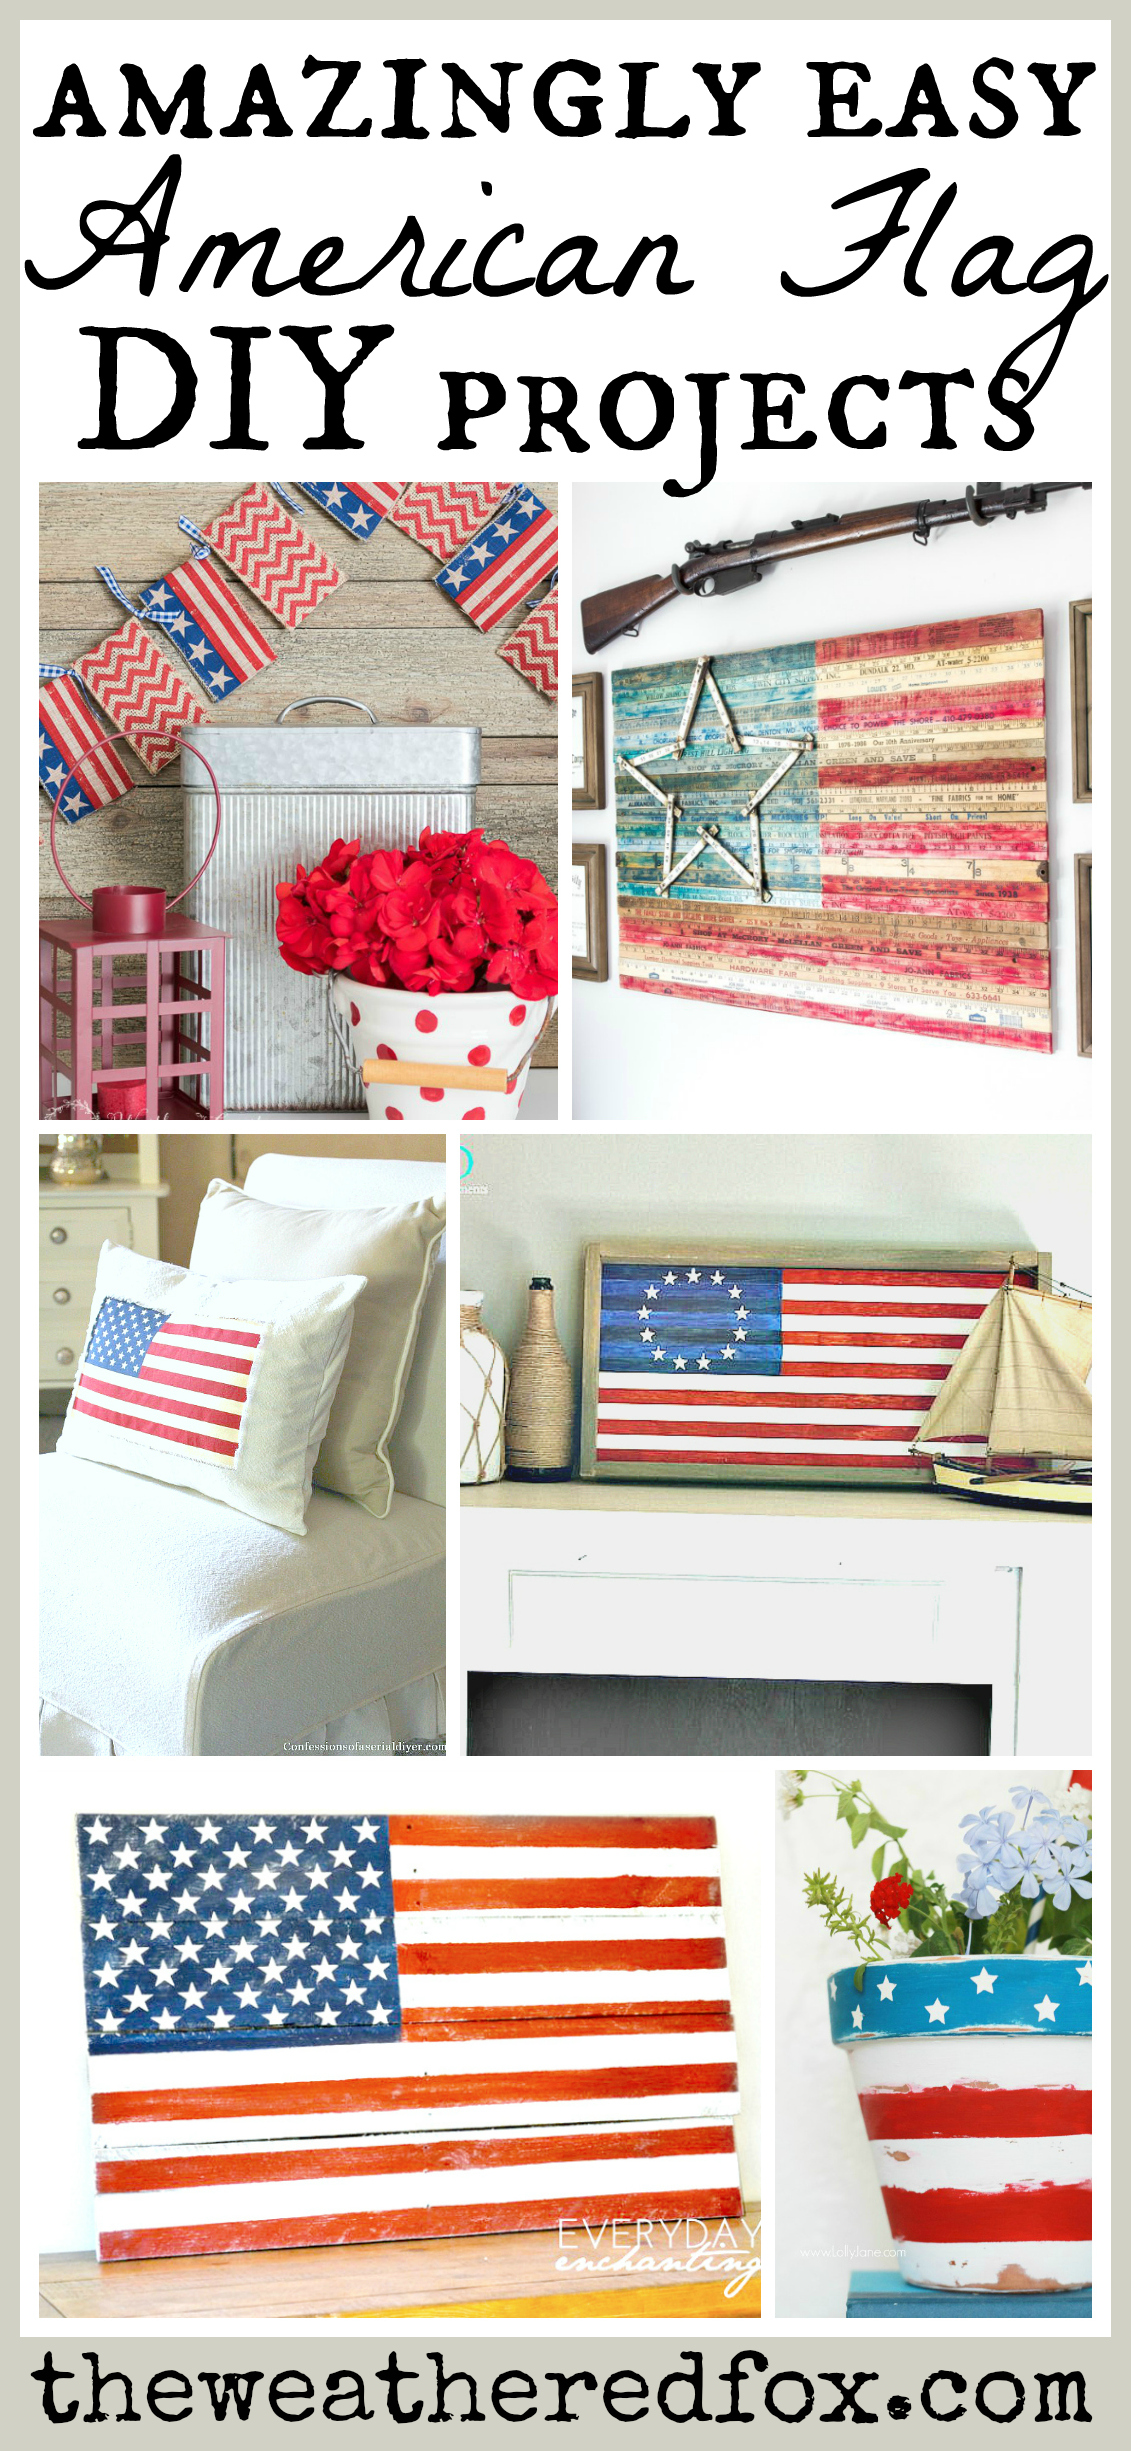 American Flag Decor Ideas Diy Patriotic Projects For Summer Show Your Pride